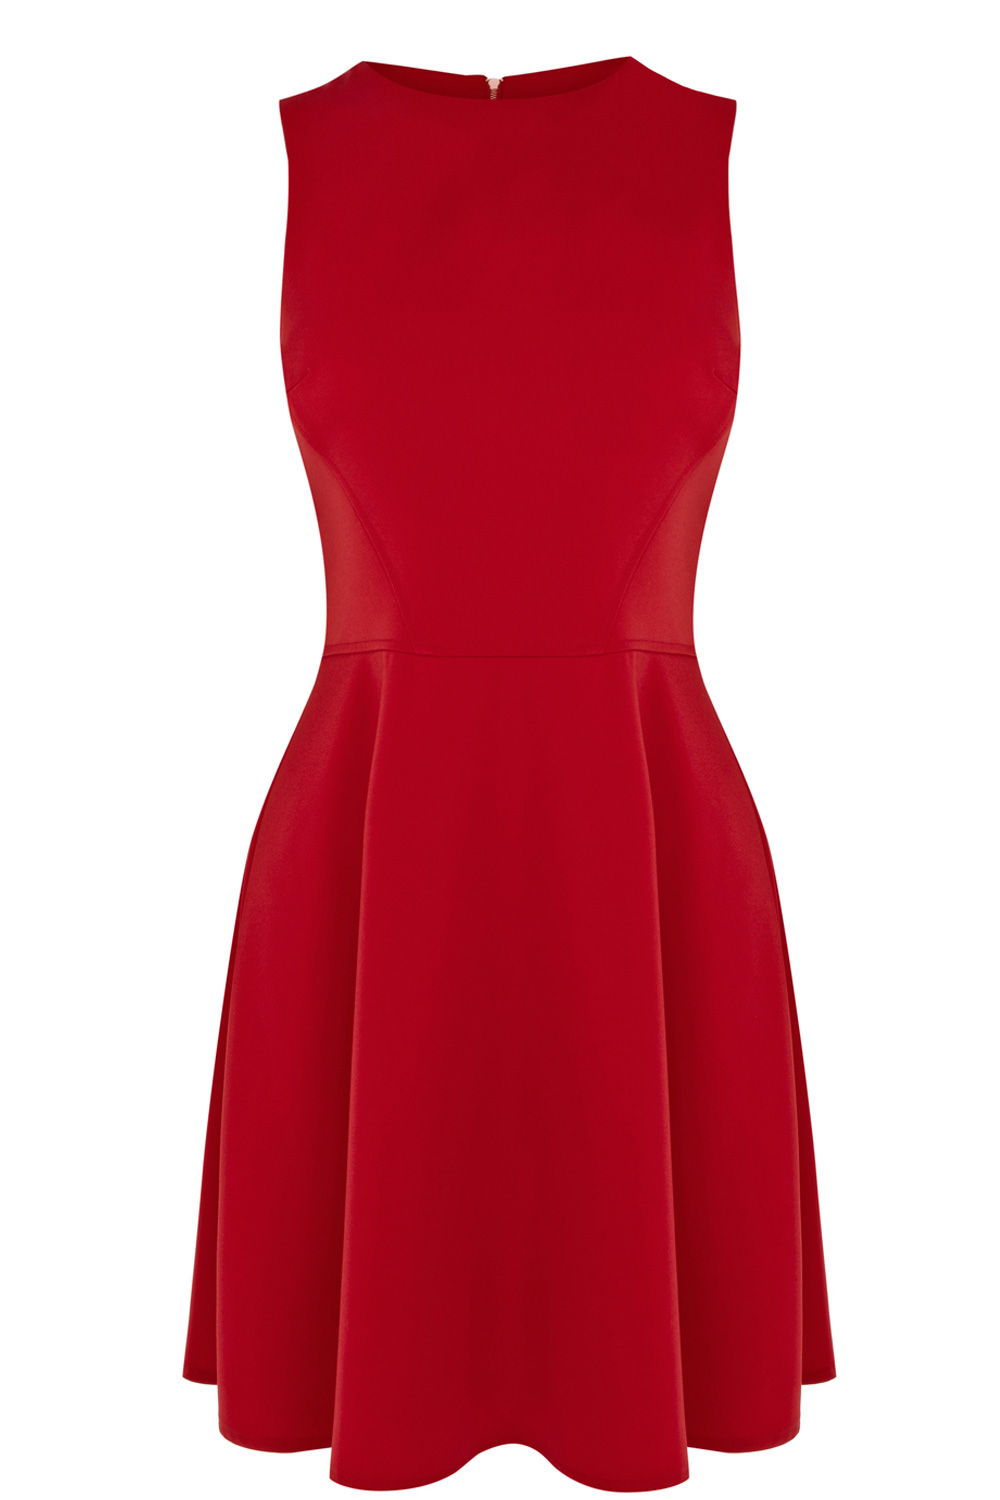   Red Going Out Skater Dress    Oasis